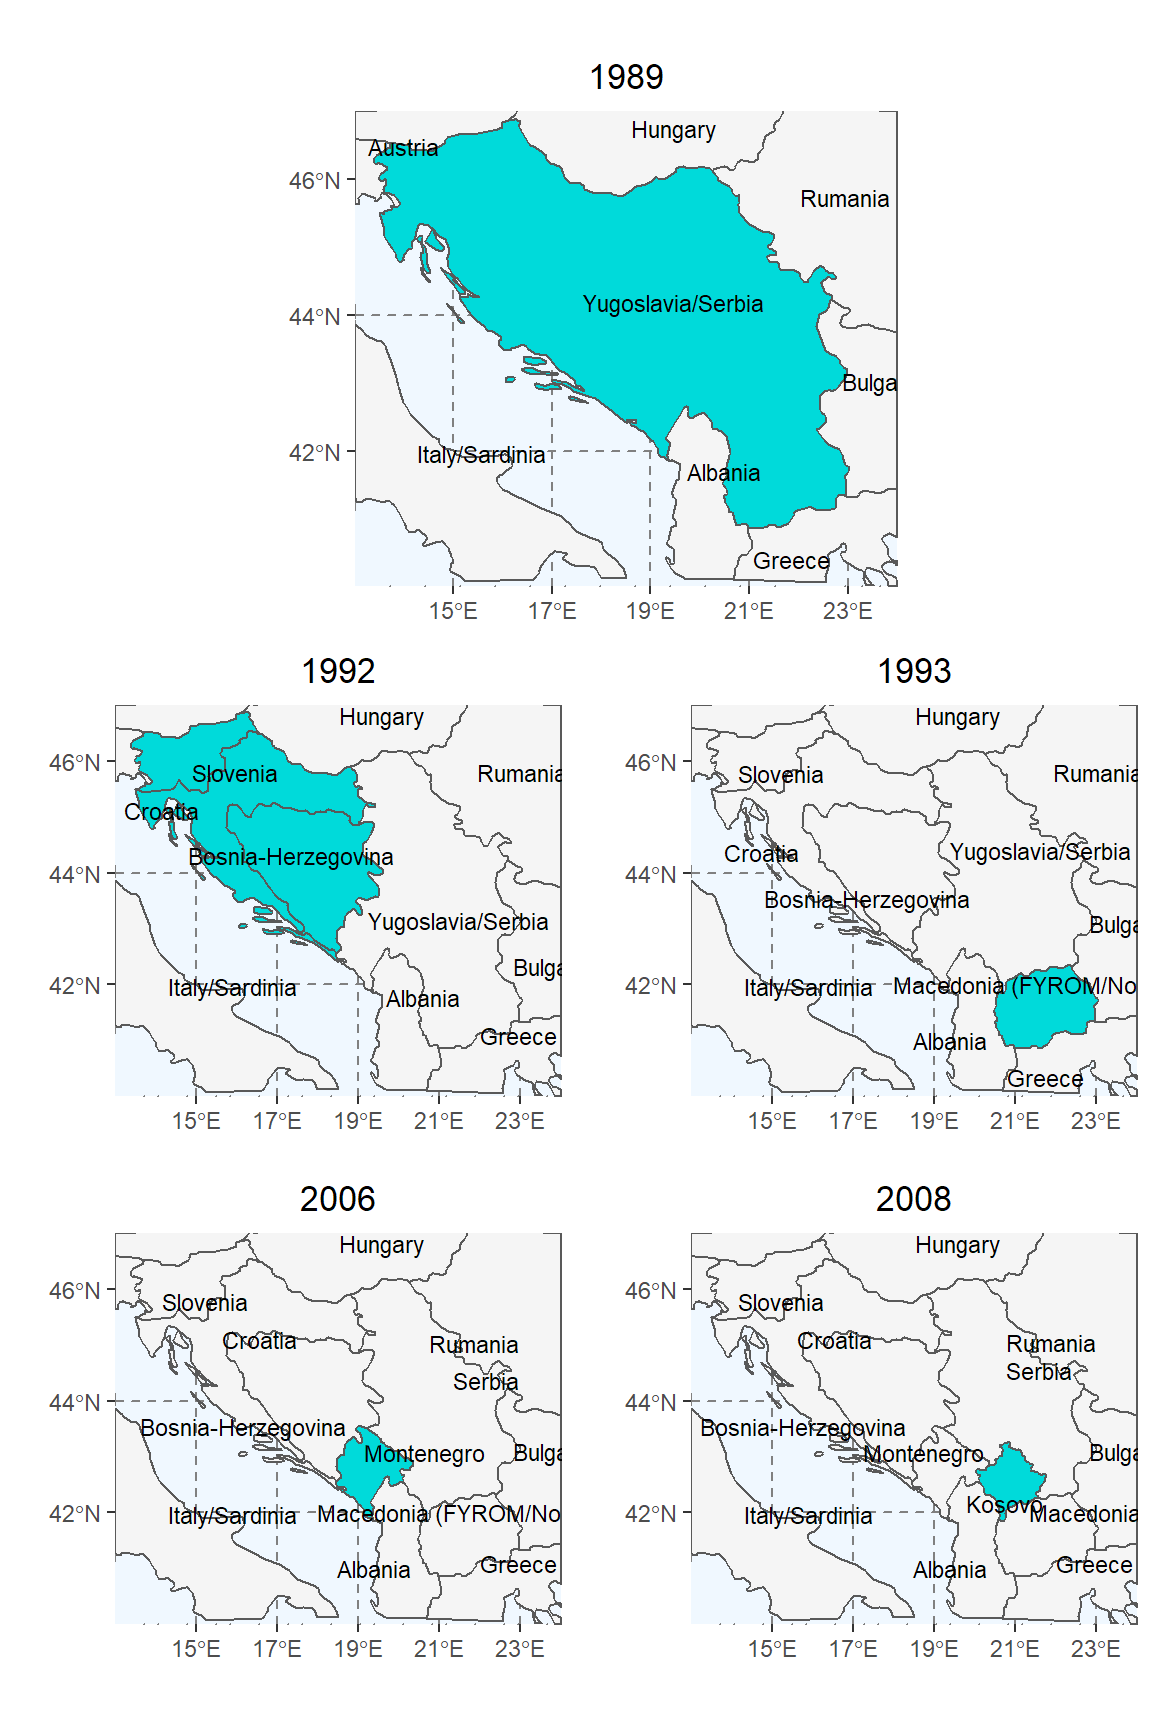 Visual timeline of significant secessions from the former Yugoslavian state as internationally recognized and coded by the Correlates of War and cshapes project. The top panel depicts Yugoslavia (highlighted teal) in its 1989 unified state. Highlighted countries in remaining panels illustrate countries that gained sovereignty since the previous date.